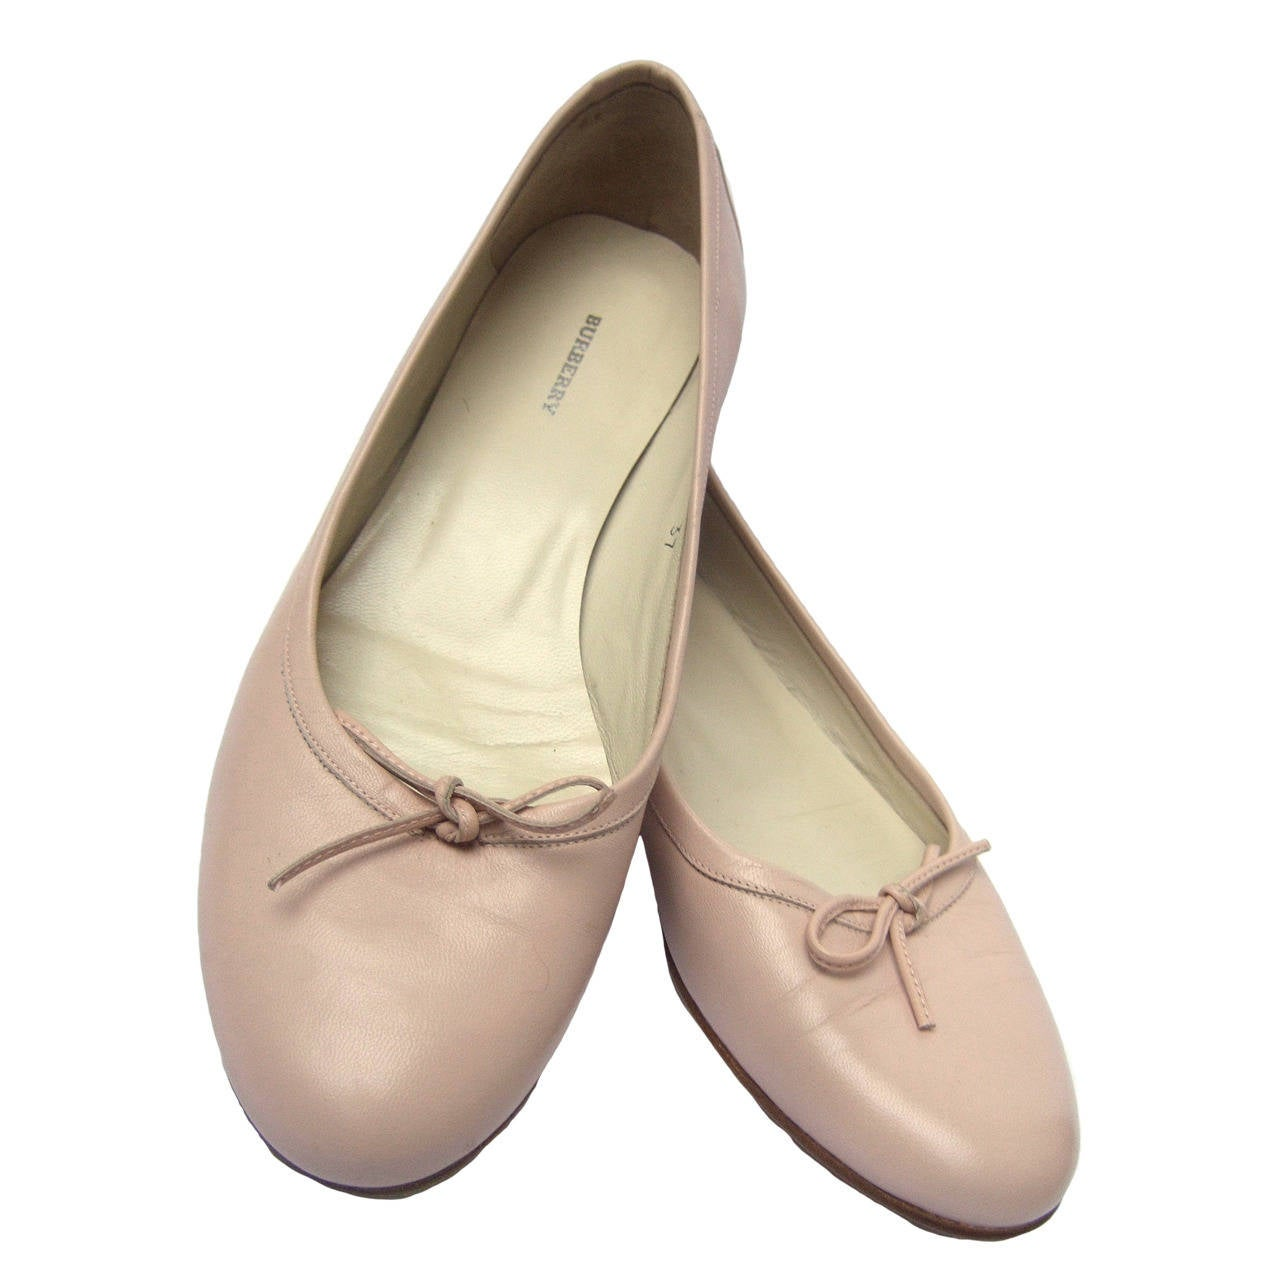 Burberry Blush Pink Leather Ballet Style Flats Size 37 For Sale